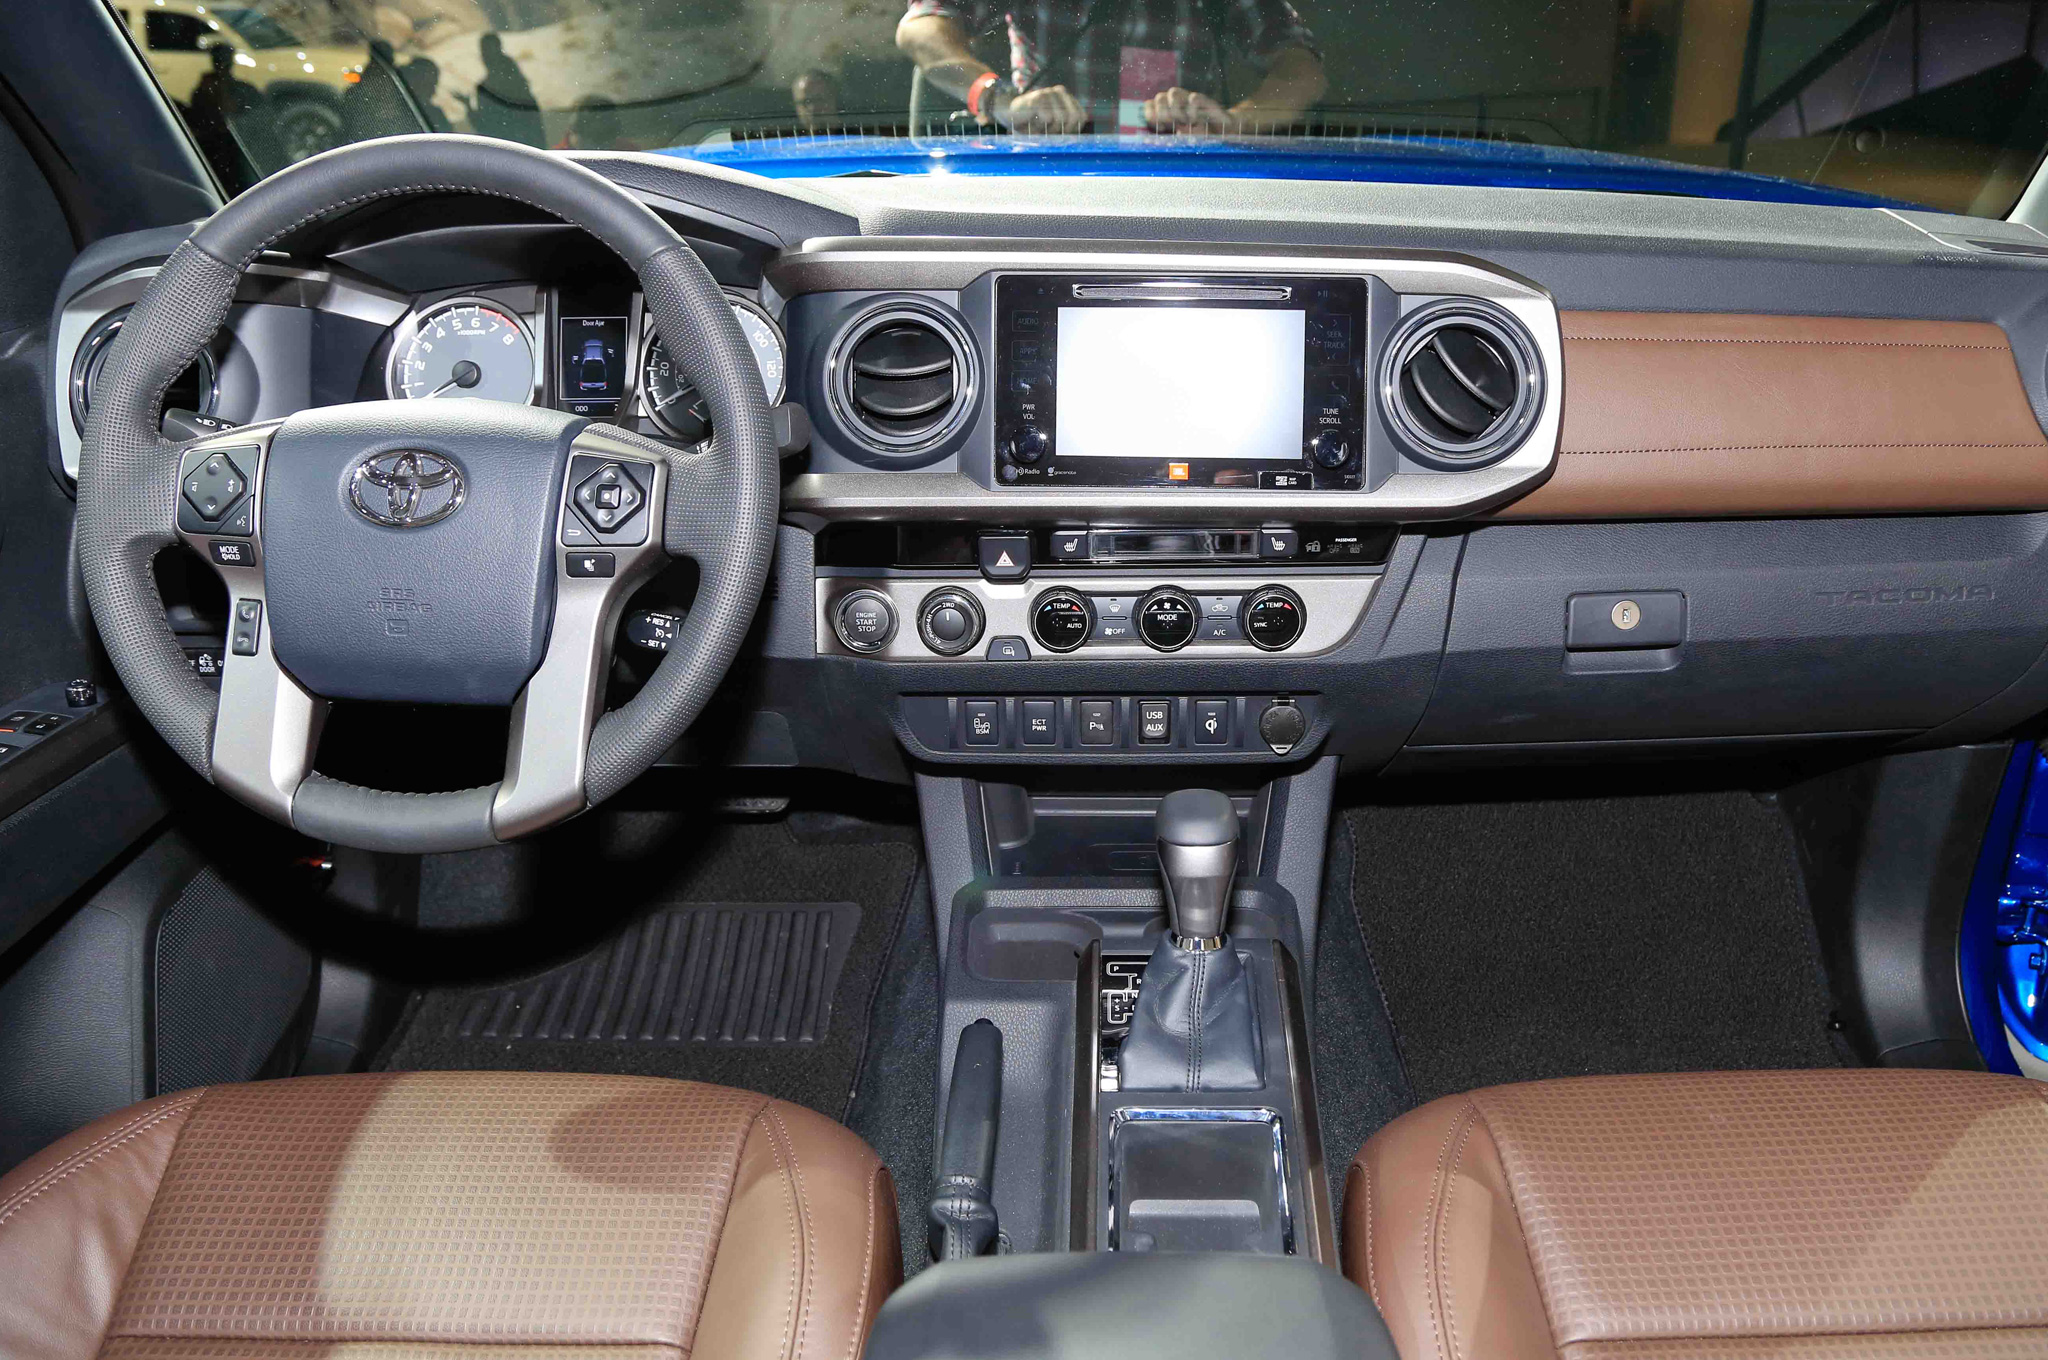 2016 Toyota Tacoma Interior Dashboard (Photo 5 of 10)